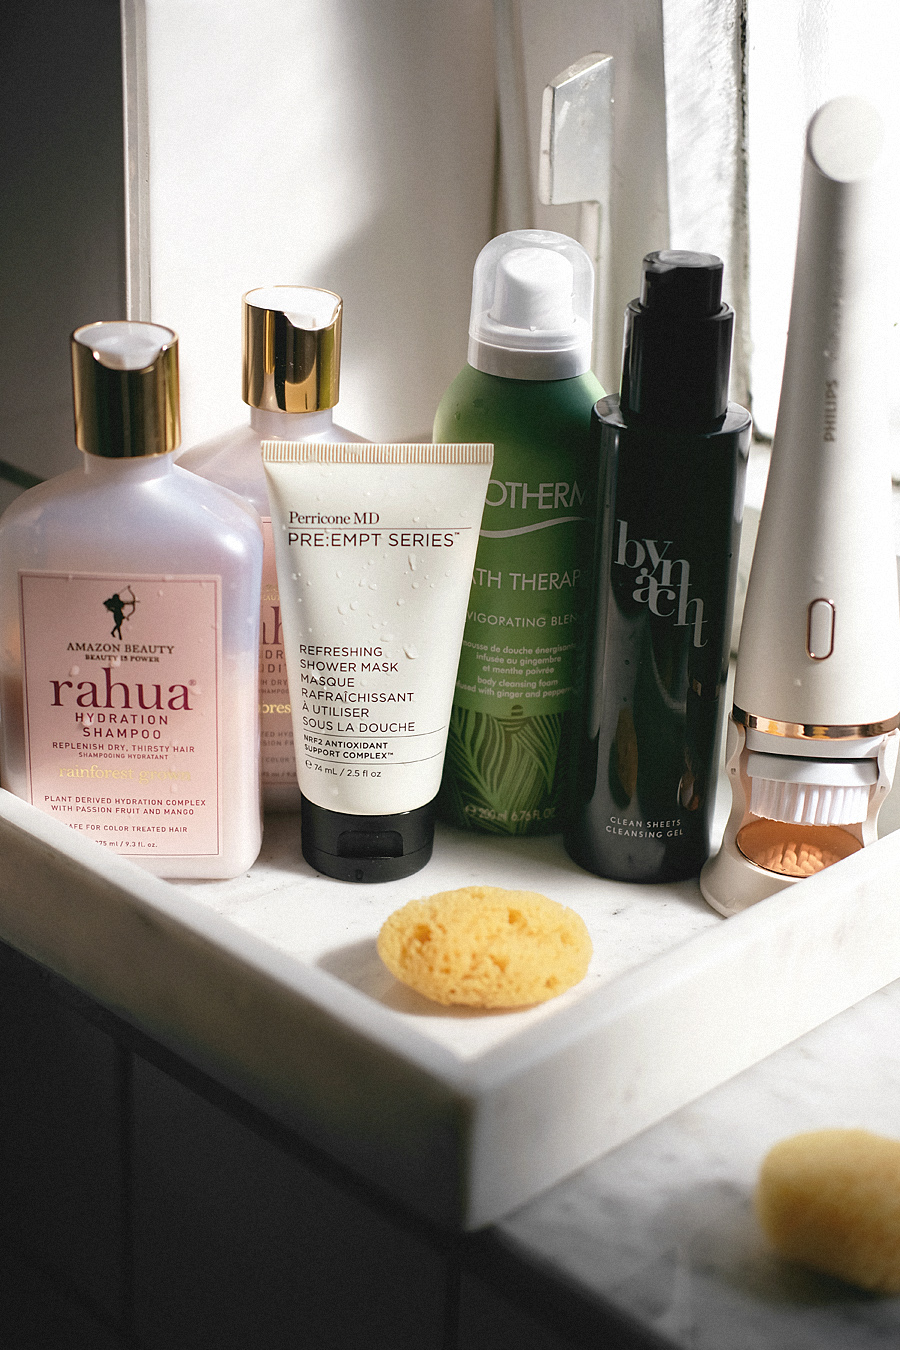 What's in my Shower - Bathroom Beauty Products: Rahua Hydration shampoo & conditioner, Perricone MD Refreshing shower mask, Biotherm, Bath Therapy Invigorating shower foam, Clean Sheets Cleansing gel Bynacht, Philips VisaPure, Cowshed Wild Cow Bath and massage oil, Diptyque candles, TANGENT GC Oud Organic soap